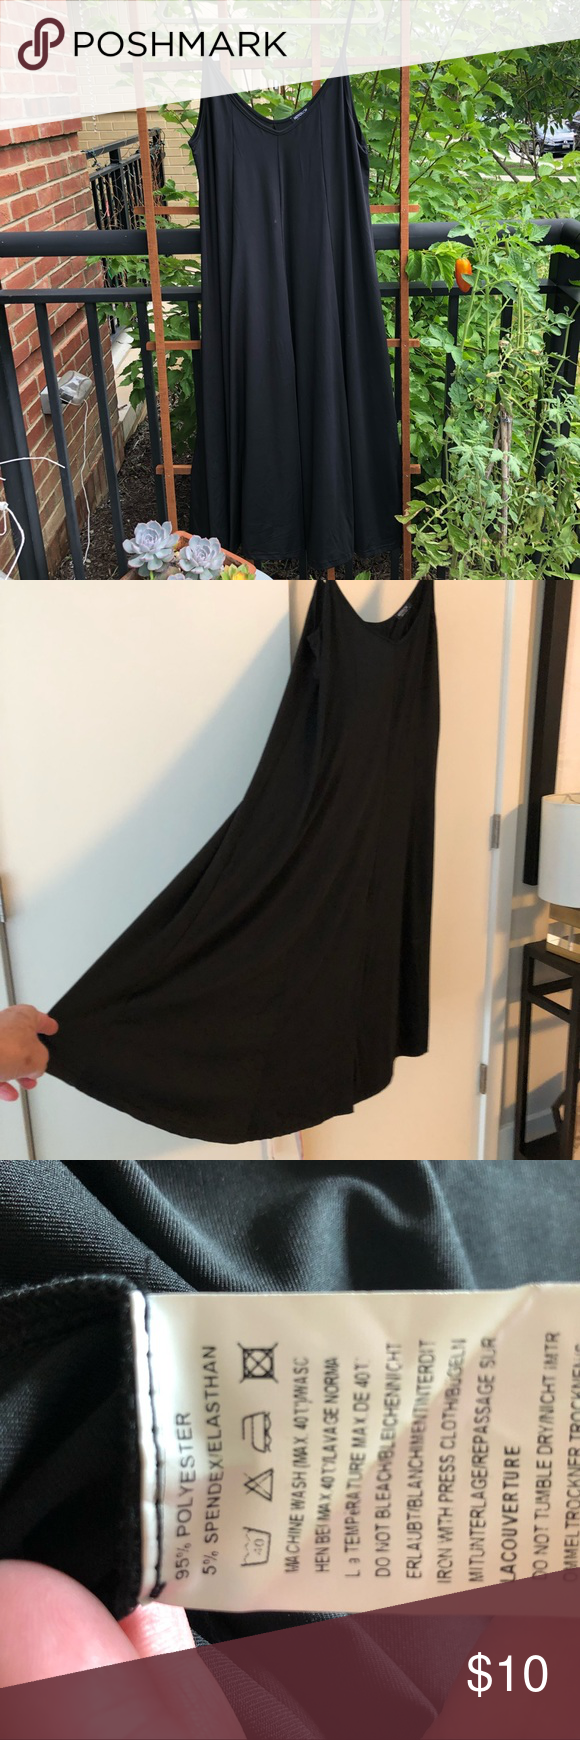 Black flowy dress with spaghetti straps this dress is inches long